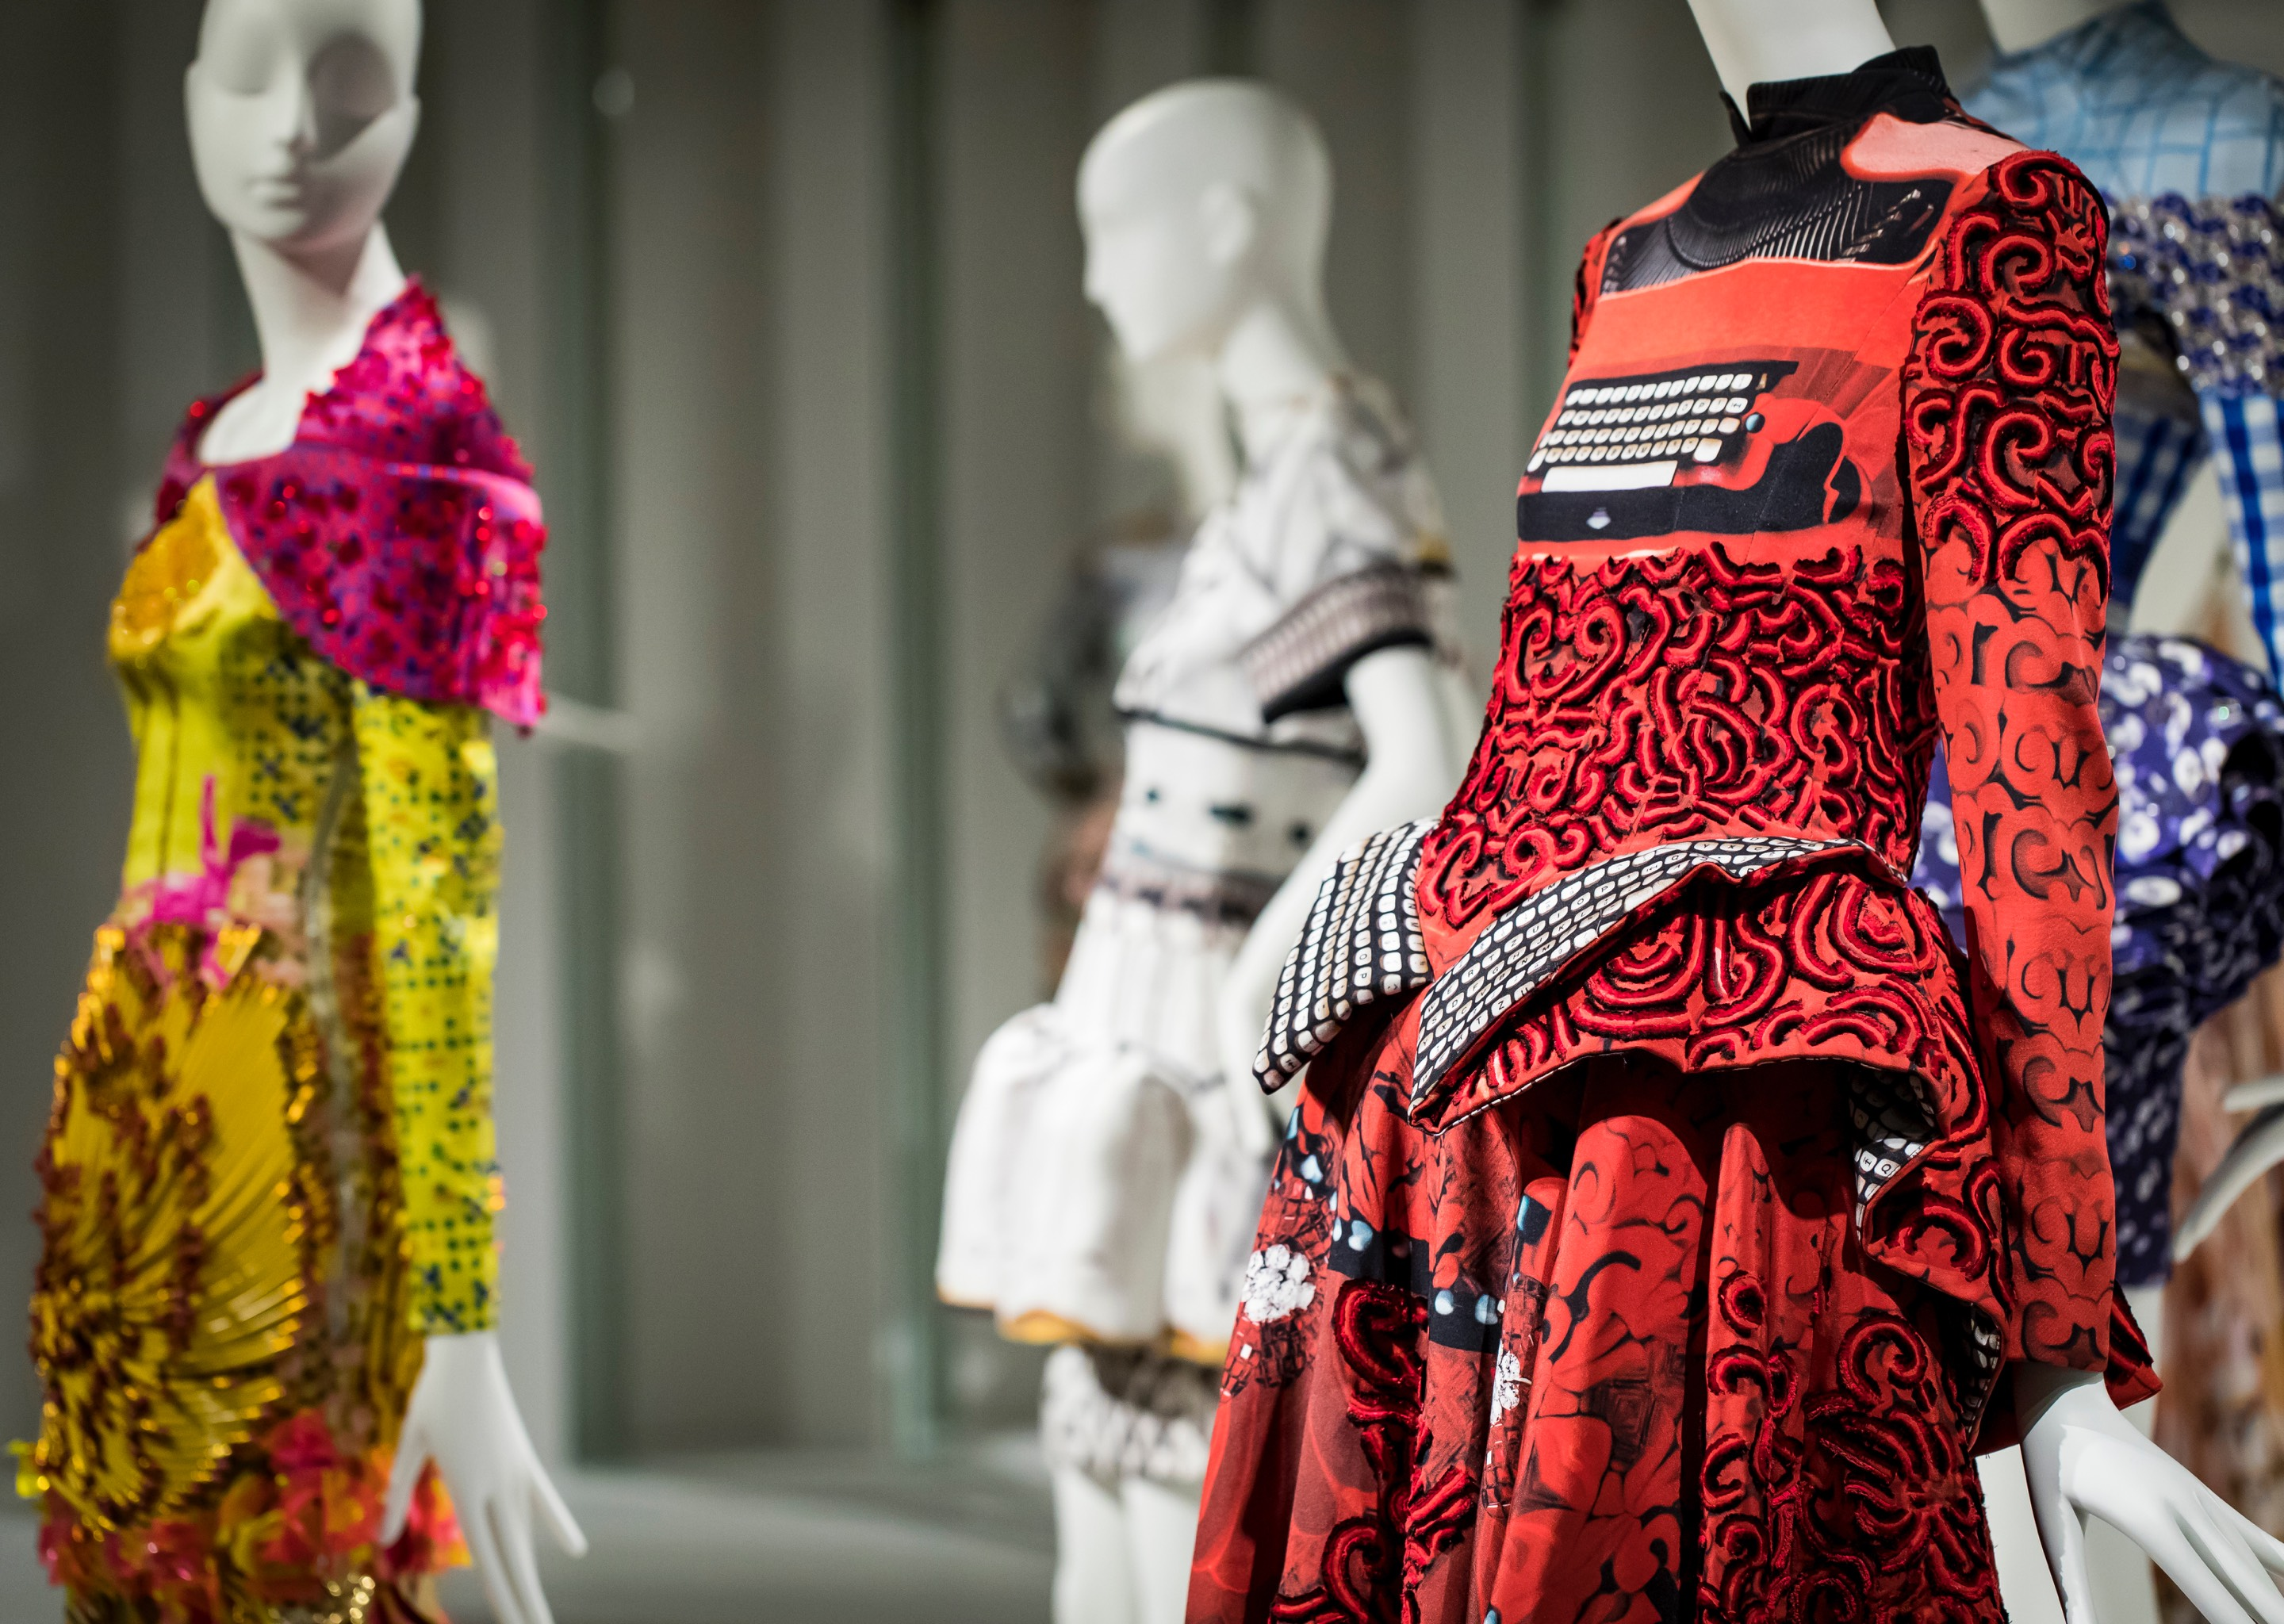 Mary Katrantzou exhibition includes Schläppi 2200 and Aloof female mannequins in celebration of the designer's 10-year career